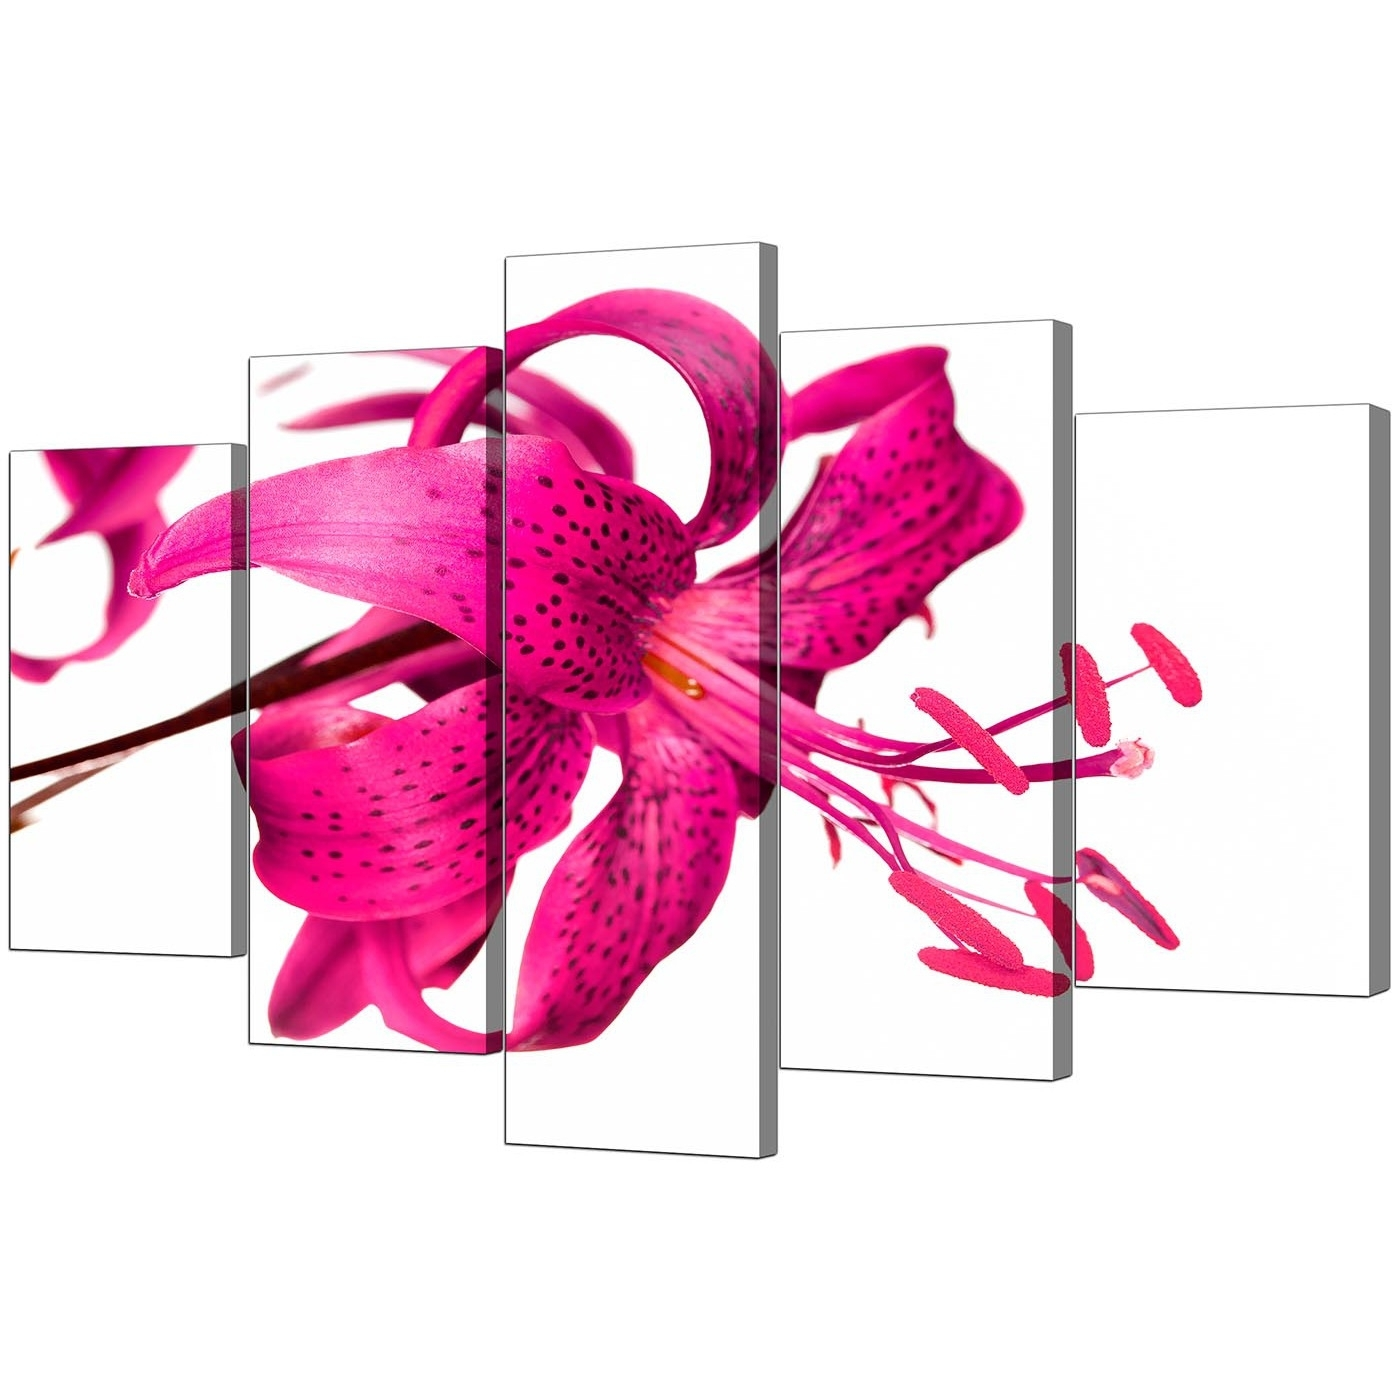 Girls Canvas Wall Art With Preferred Extra Large Lily Canvas Wall Art Set Of 5 In Pink (View 6 of 15)